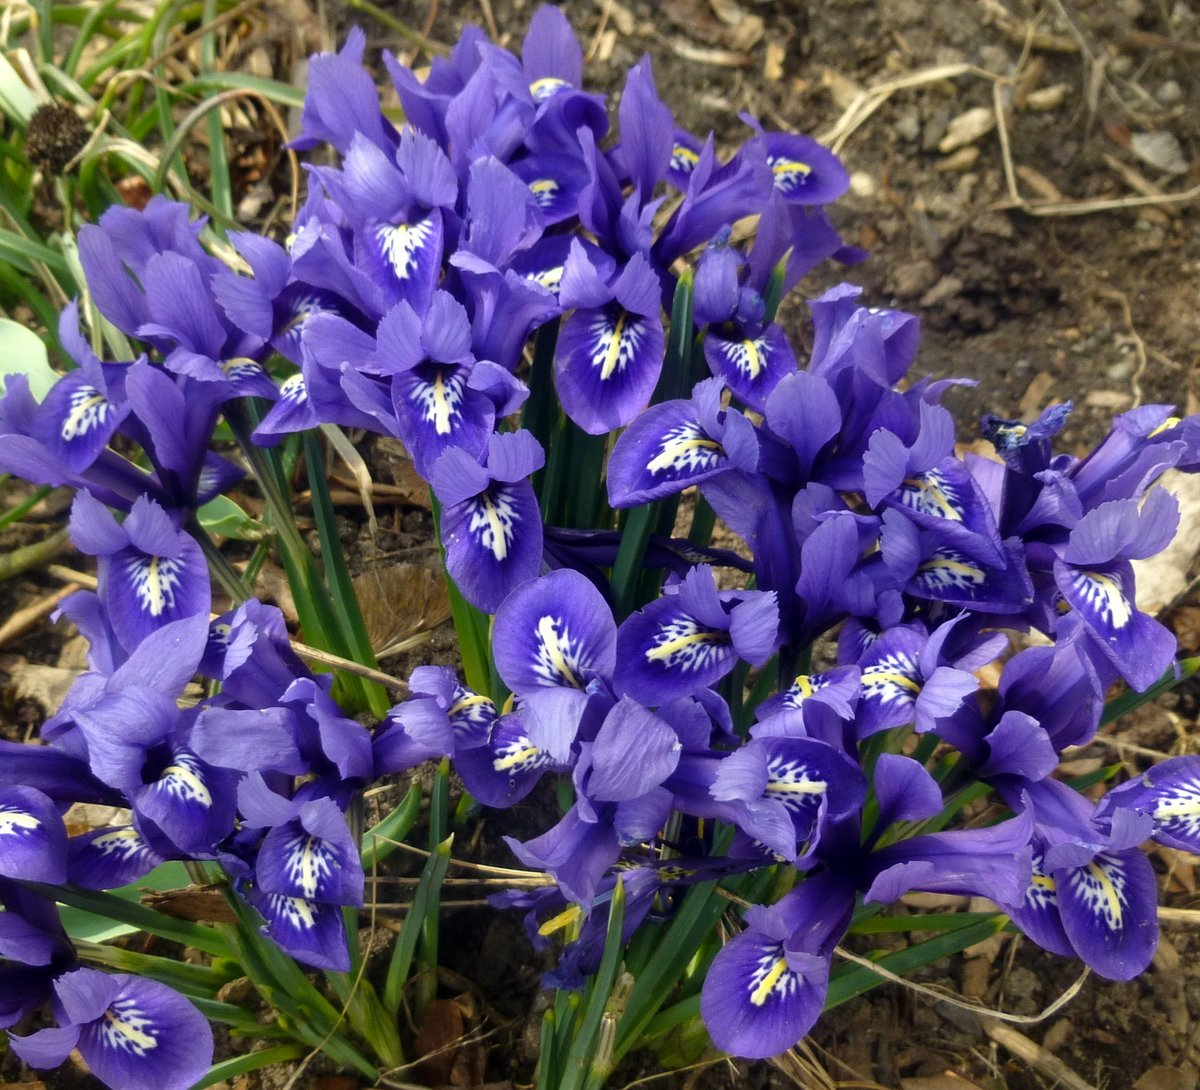 4. Reticulated Iris